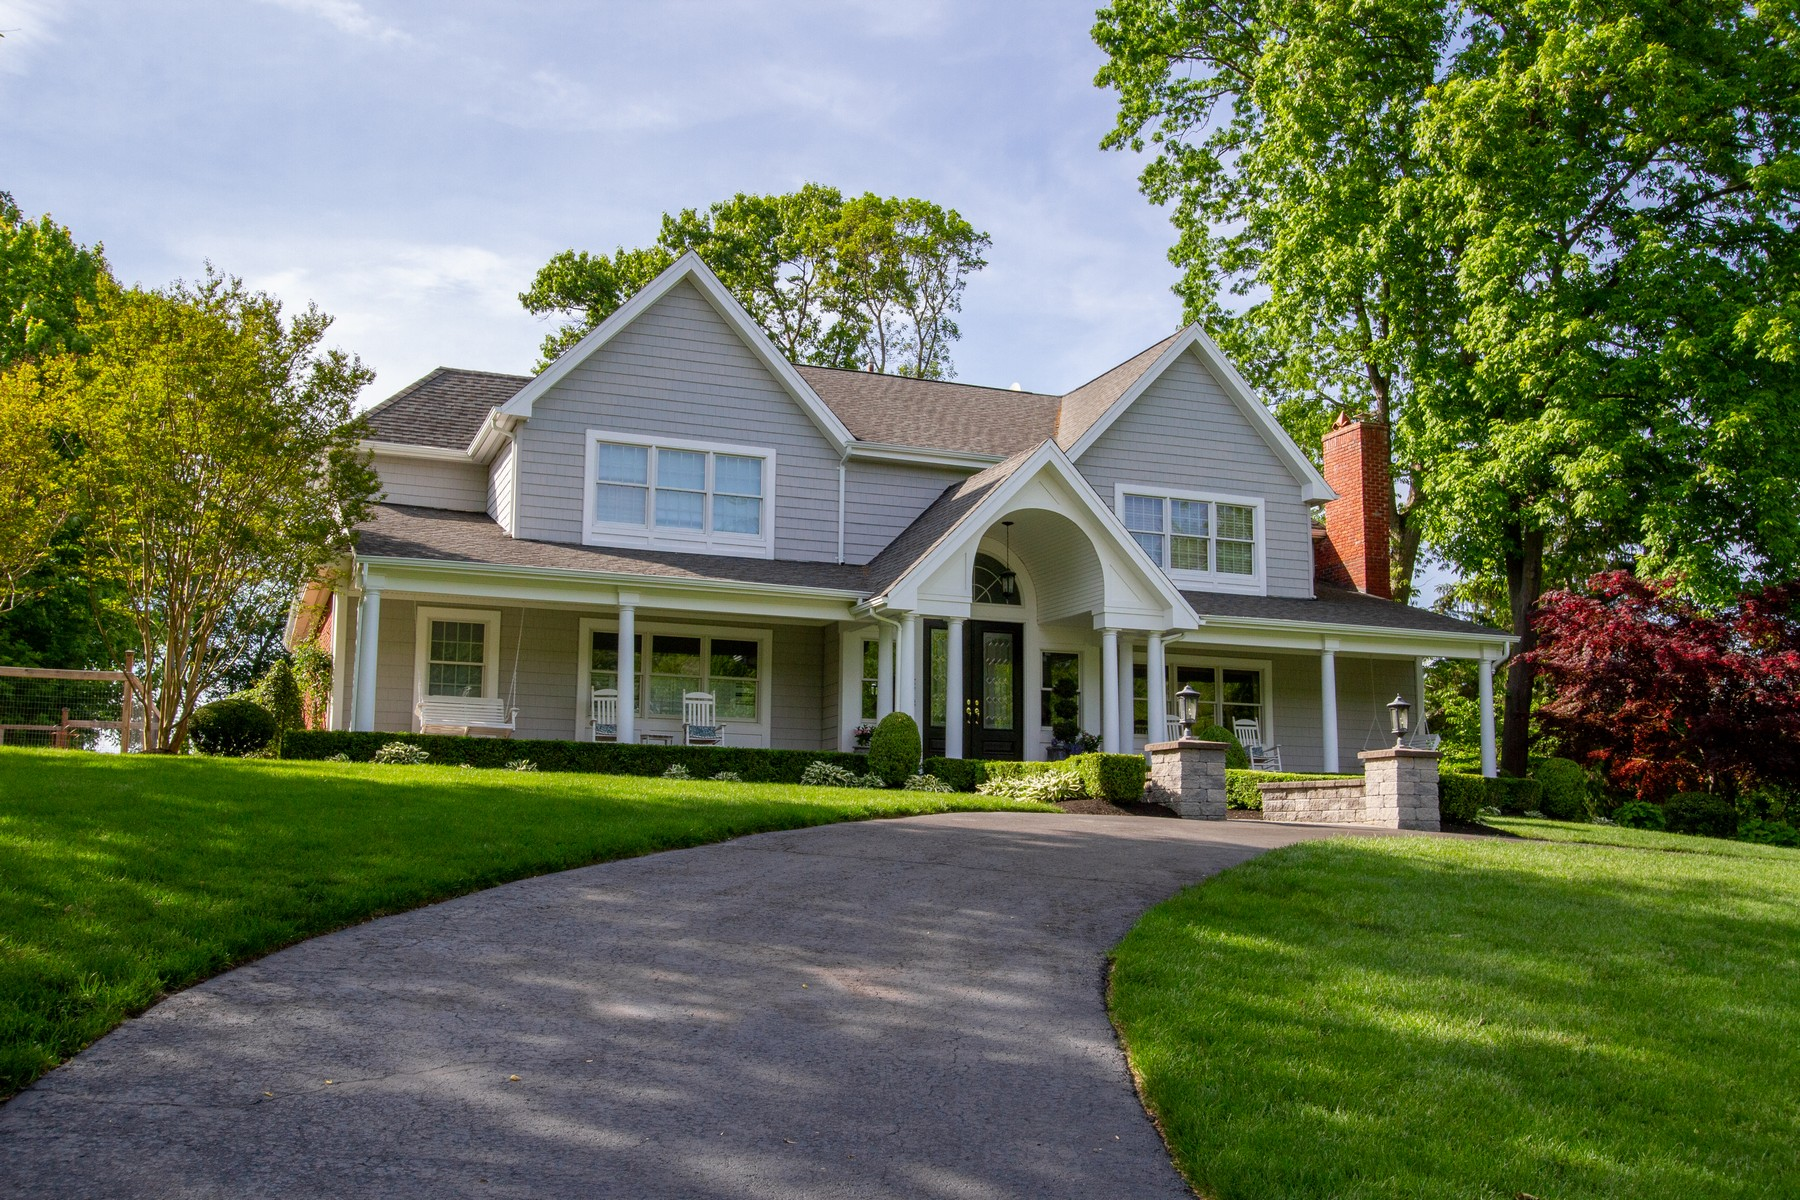 Single Family Homes for Sale at Private Setting 36 Red Coach Lane Locust, New Jersey 07760 United States